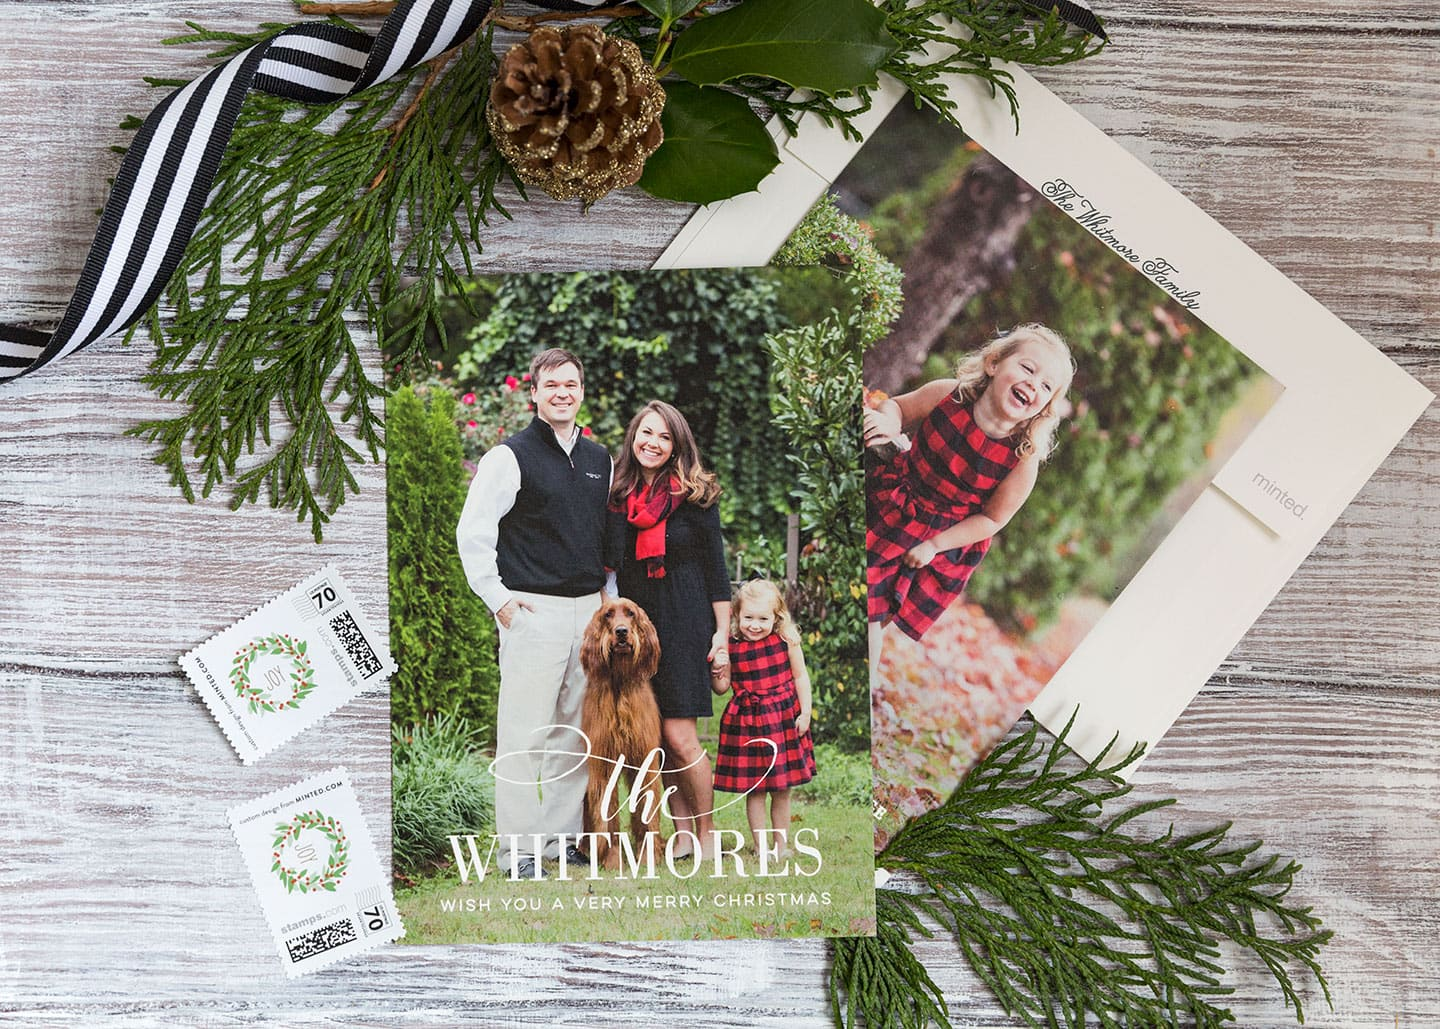 2017 Christmas Cards Courtney Whitmore